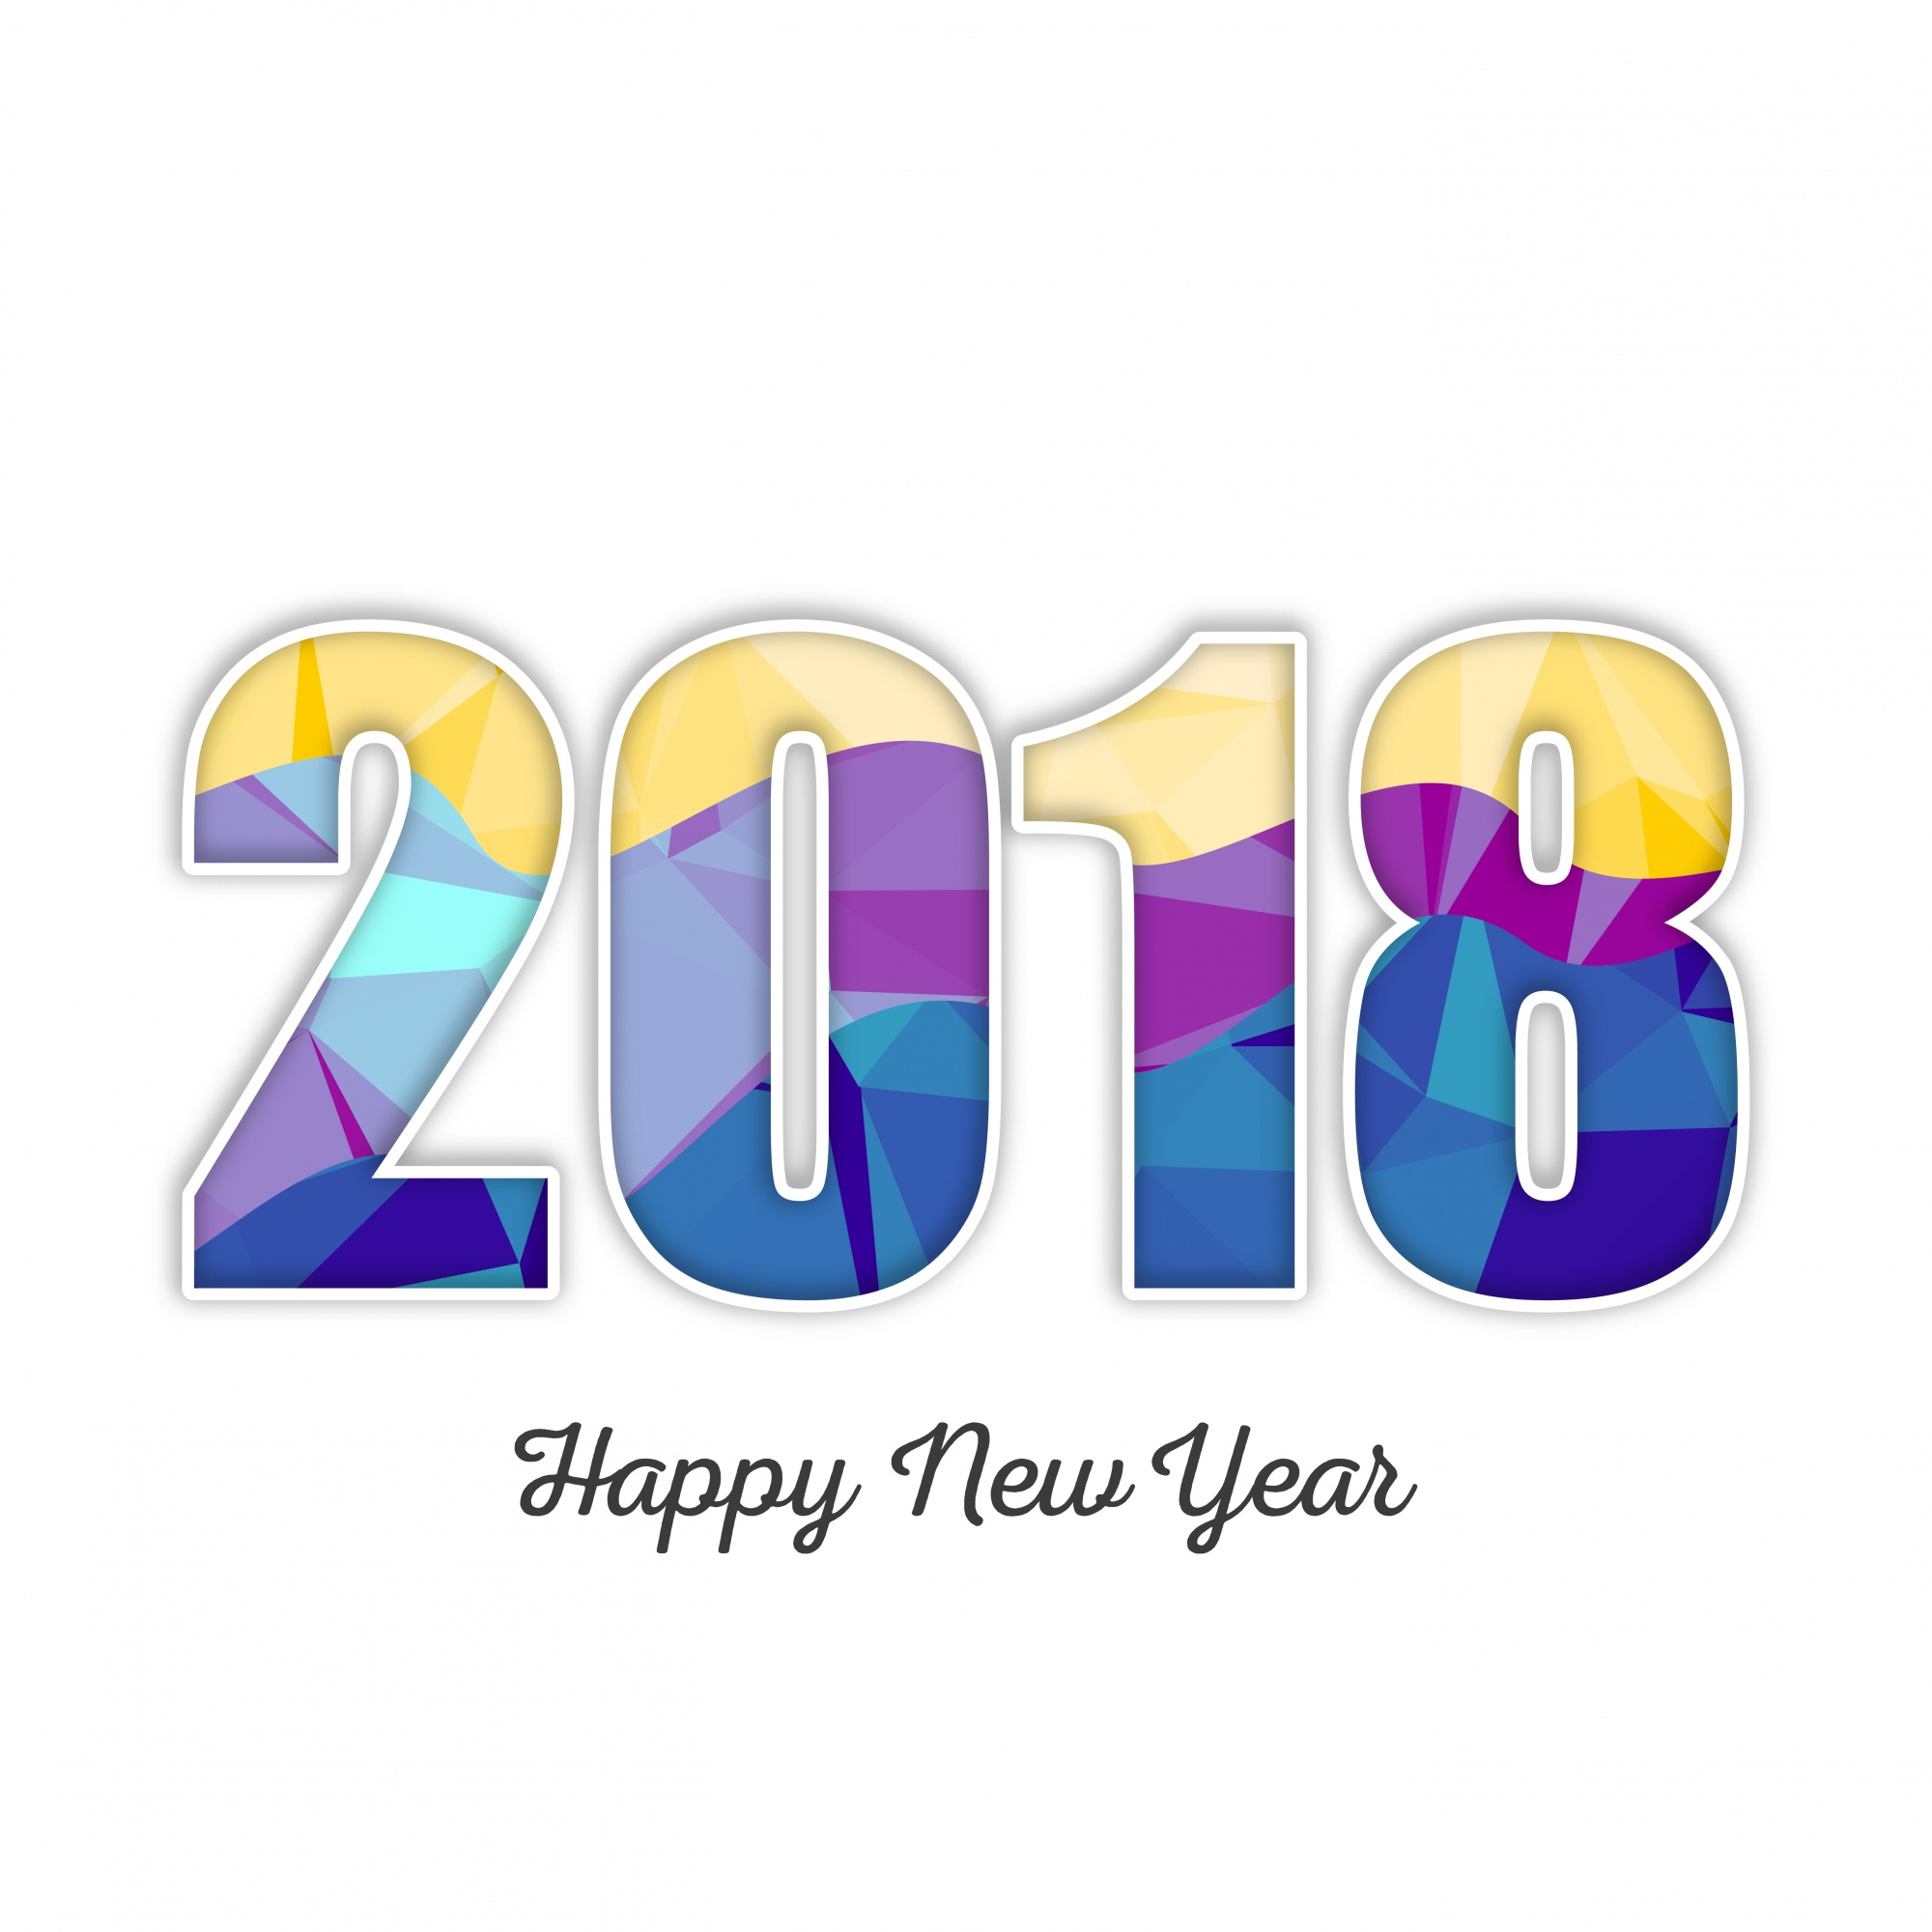 Colorful typographic new year design